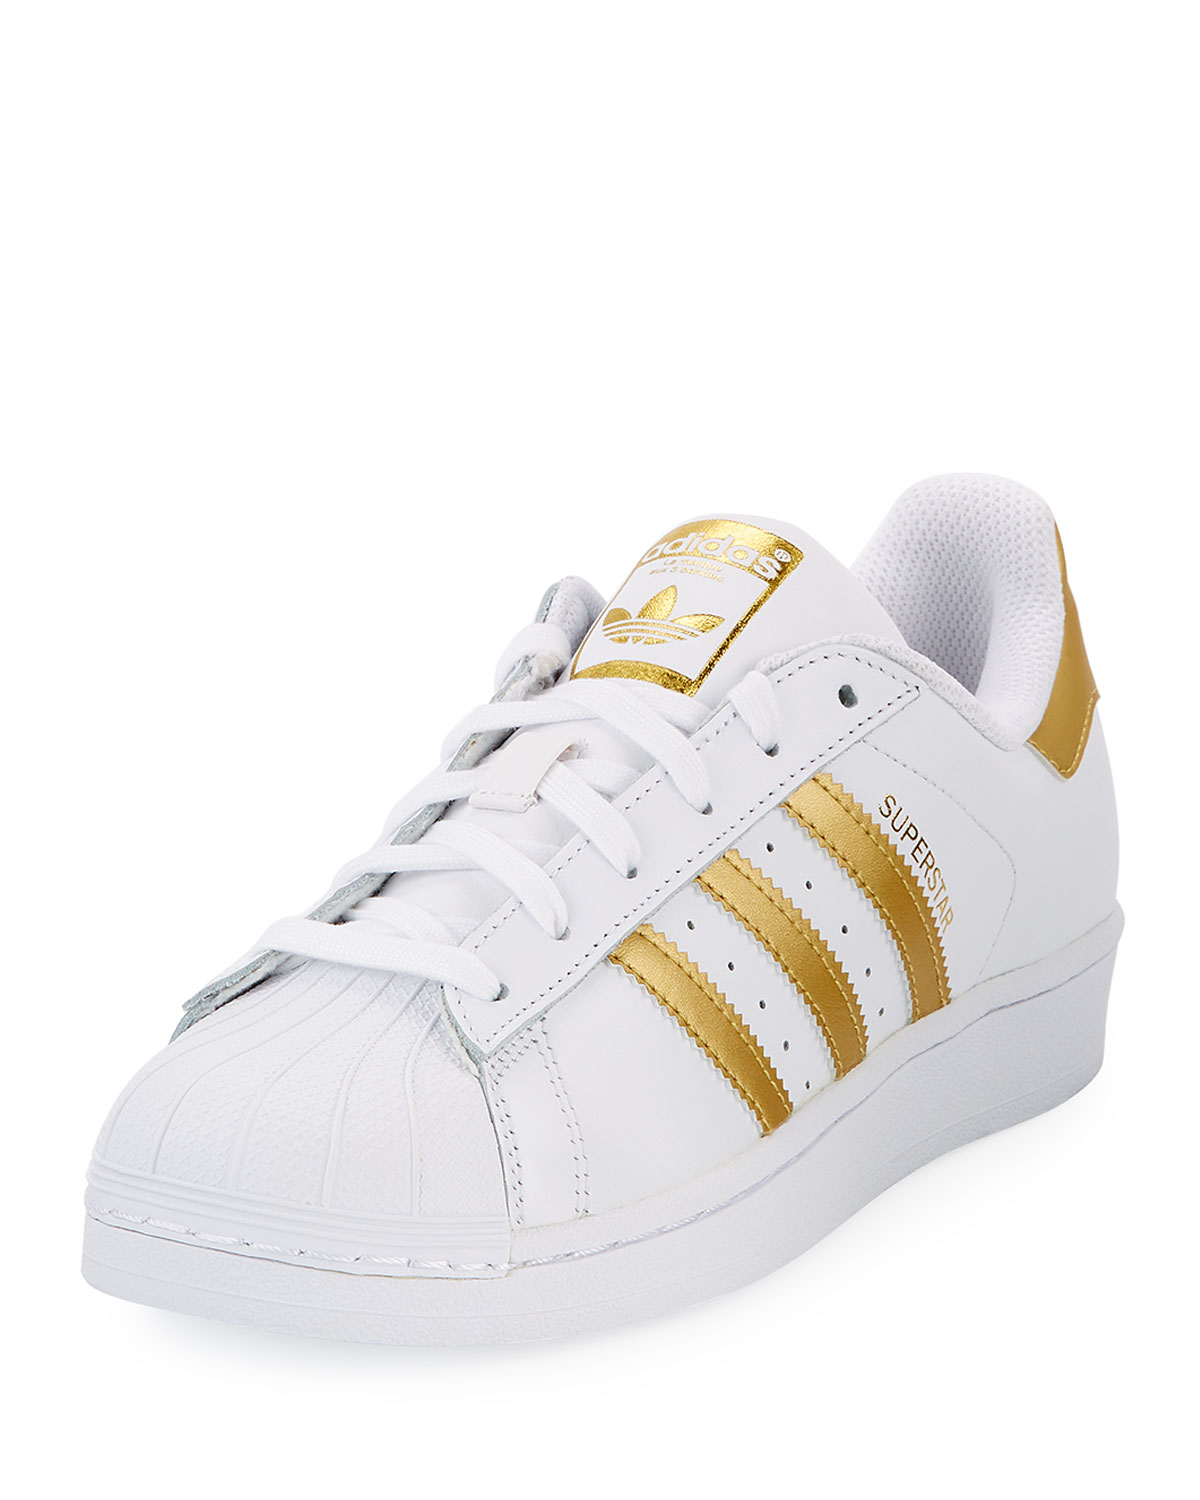 sports shoes 21a25 d750a Adidas Superstar Original Fashion Sneaker, White Gold